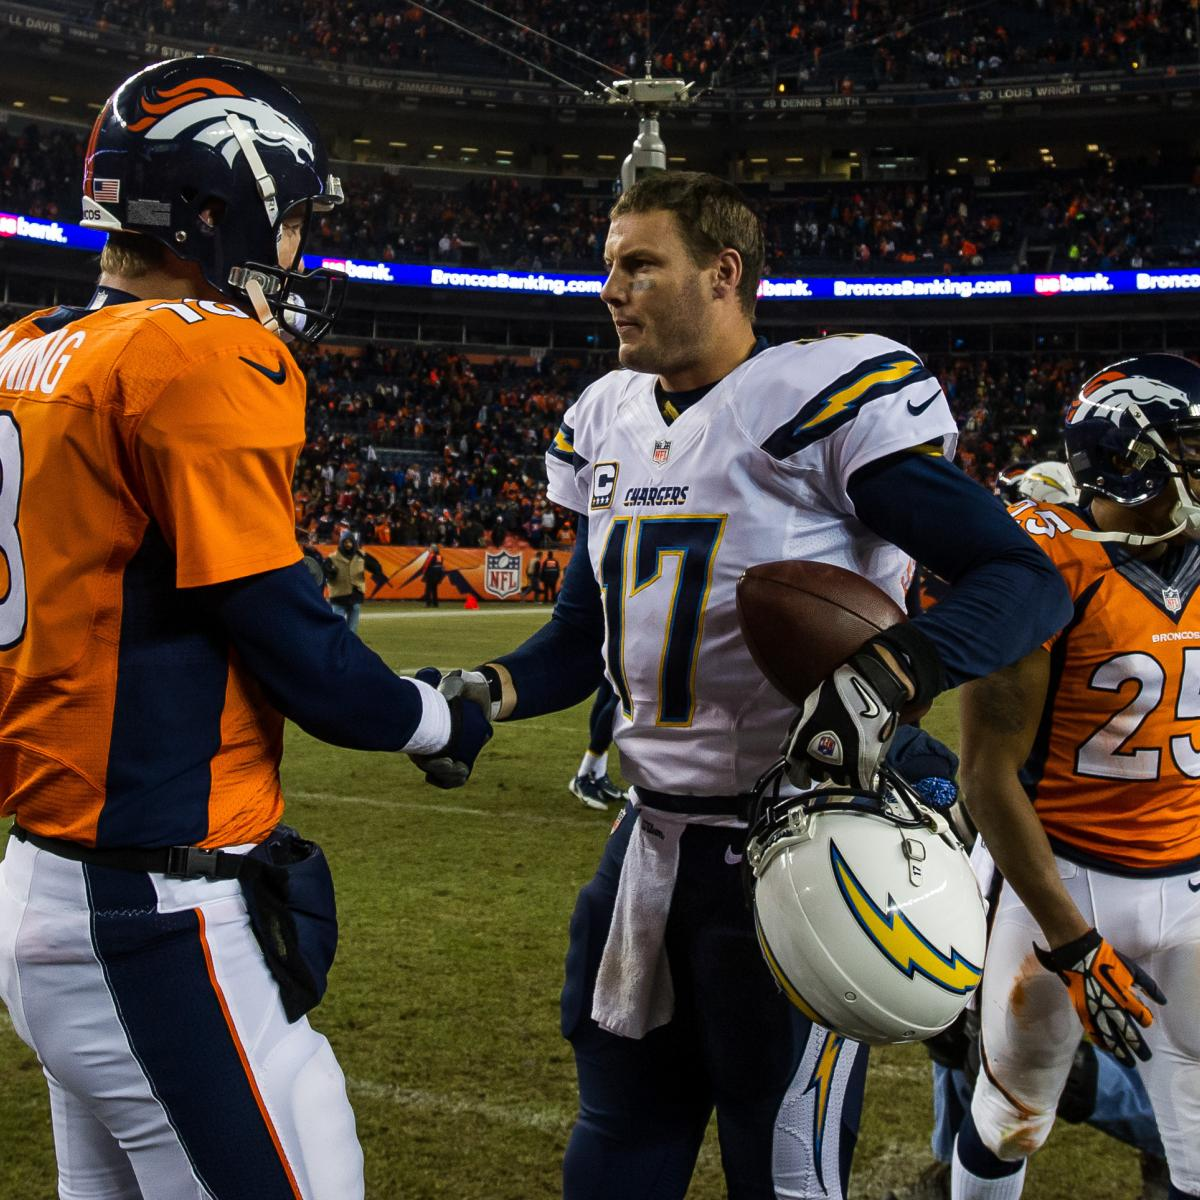 Denver News On Your Side: Chargers Vs. Broncos: What Denver Must Do To Avoid Upset